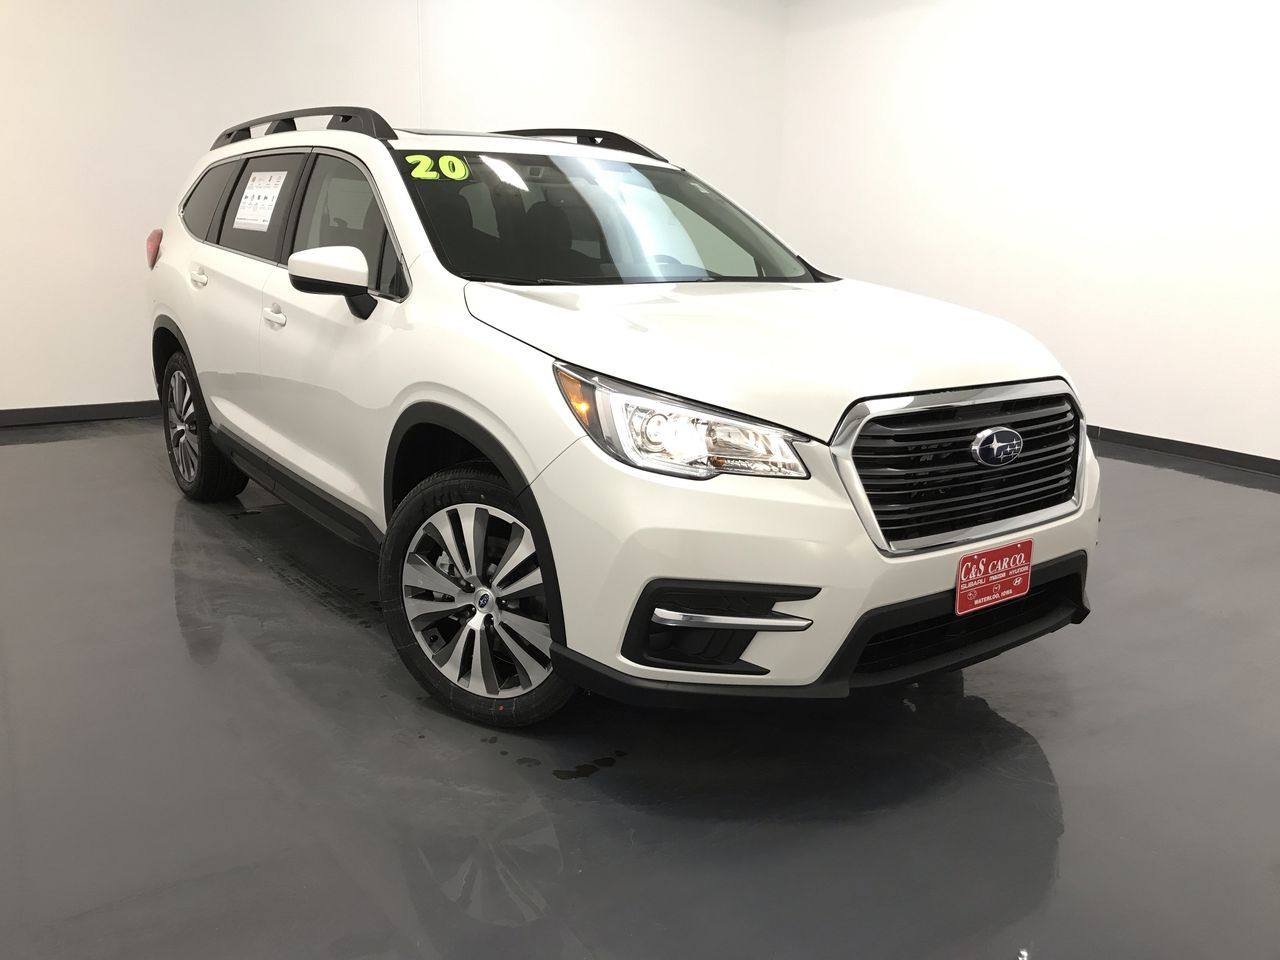 2020 Subaru ASCENT Premium AWD w/Eyesight  - SB8307  - C & S Car Company